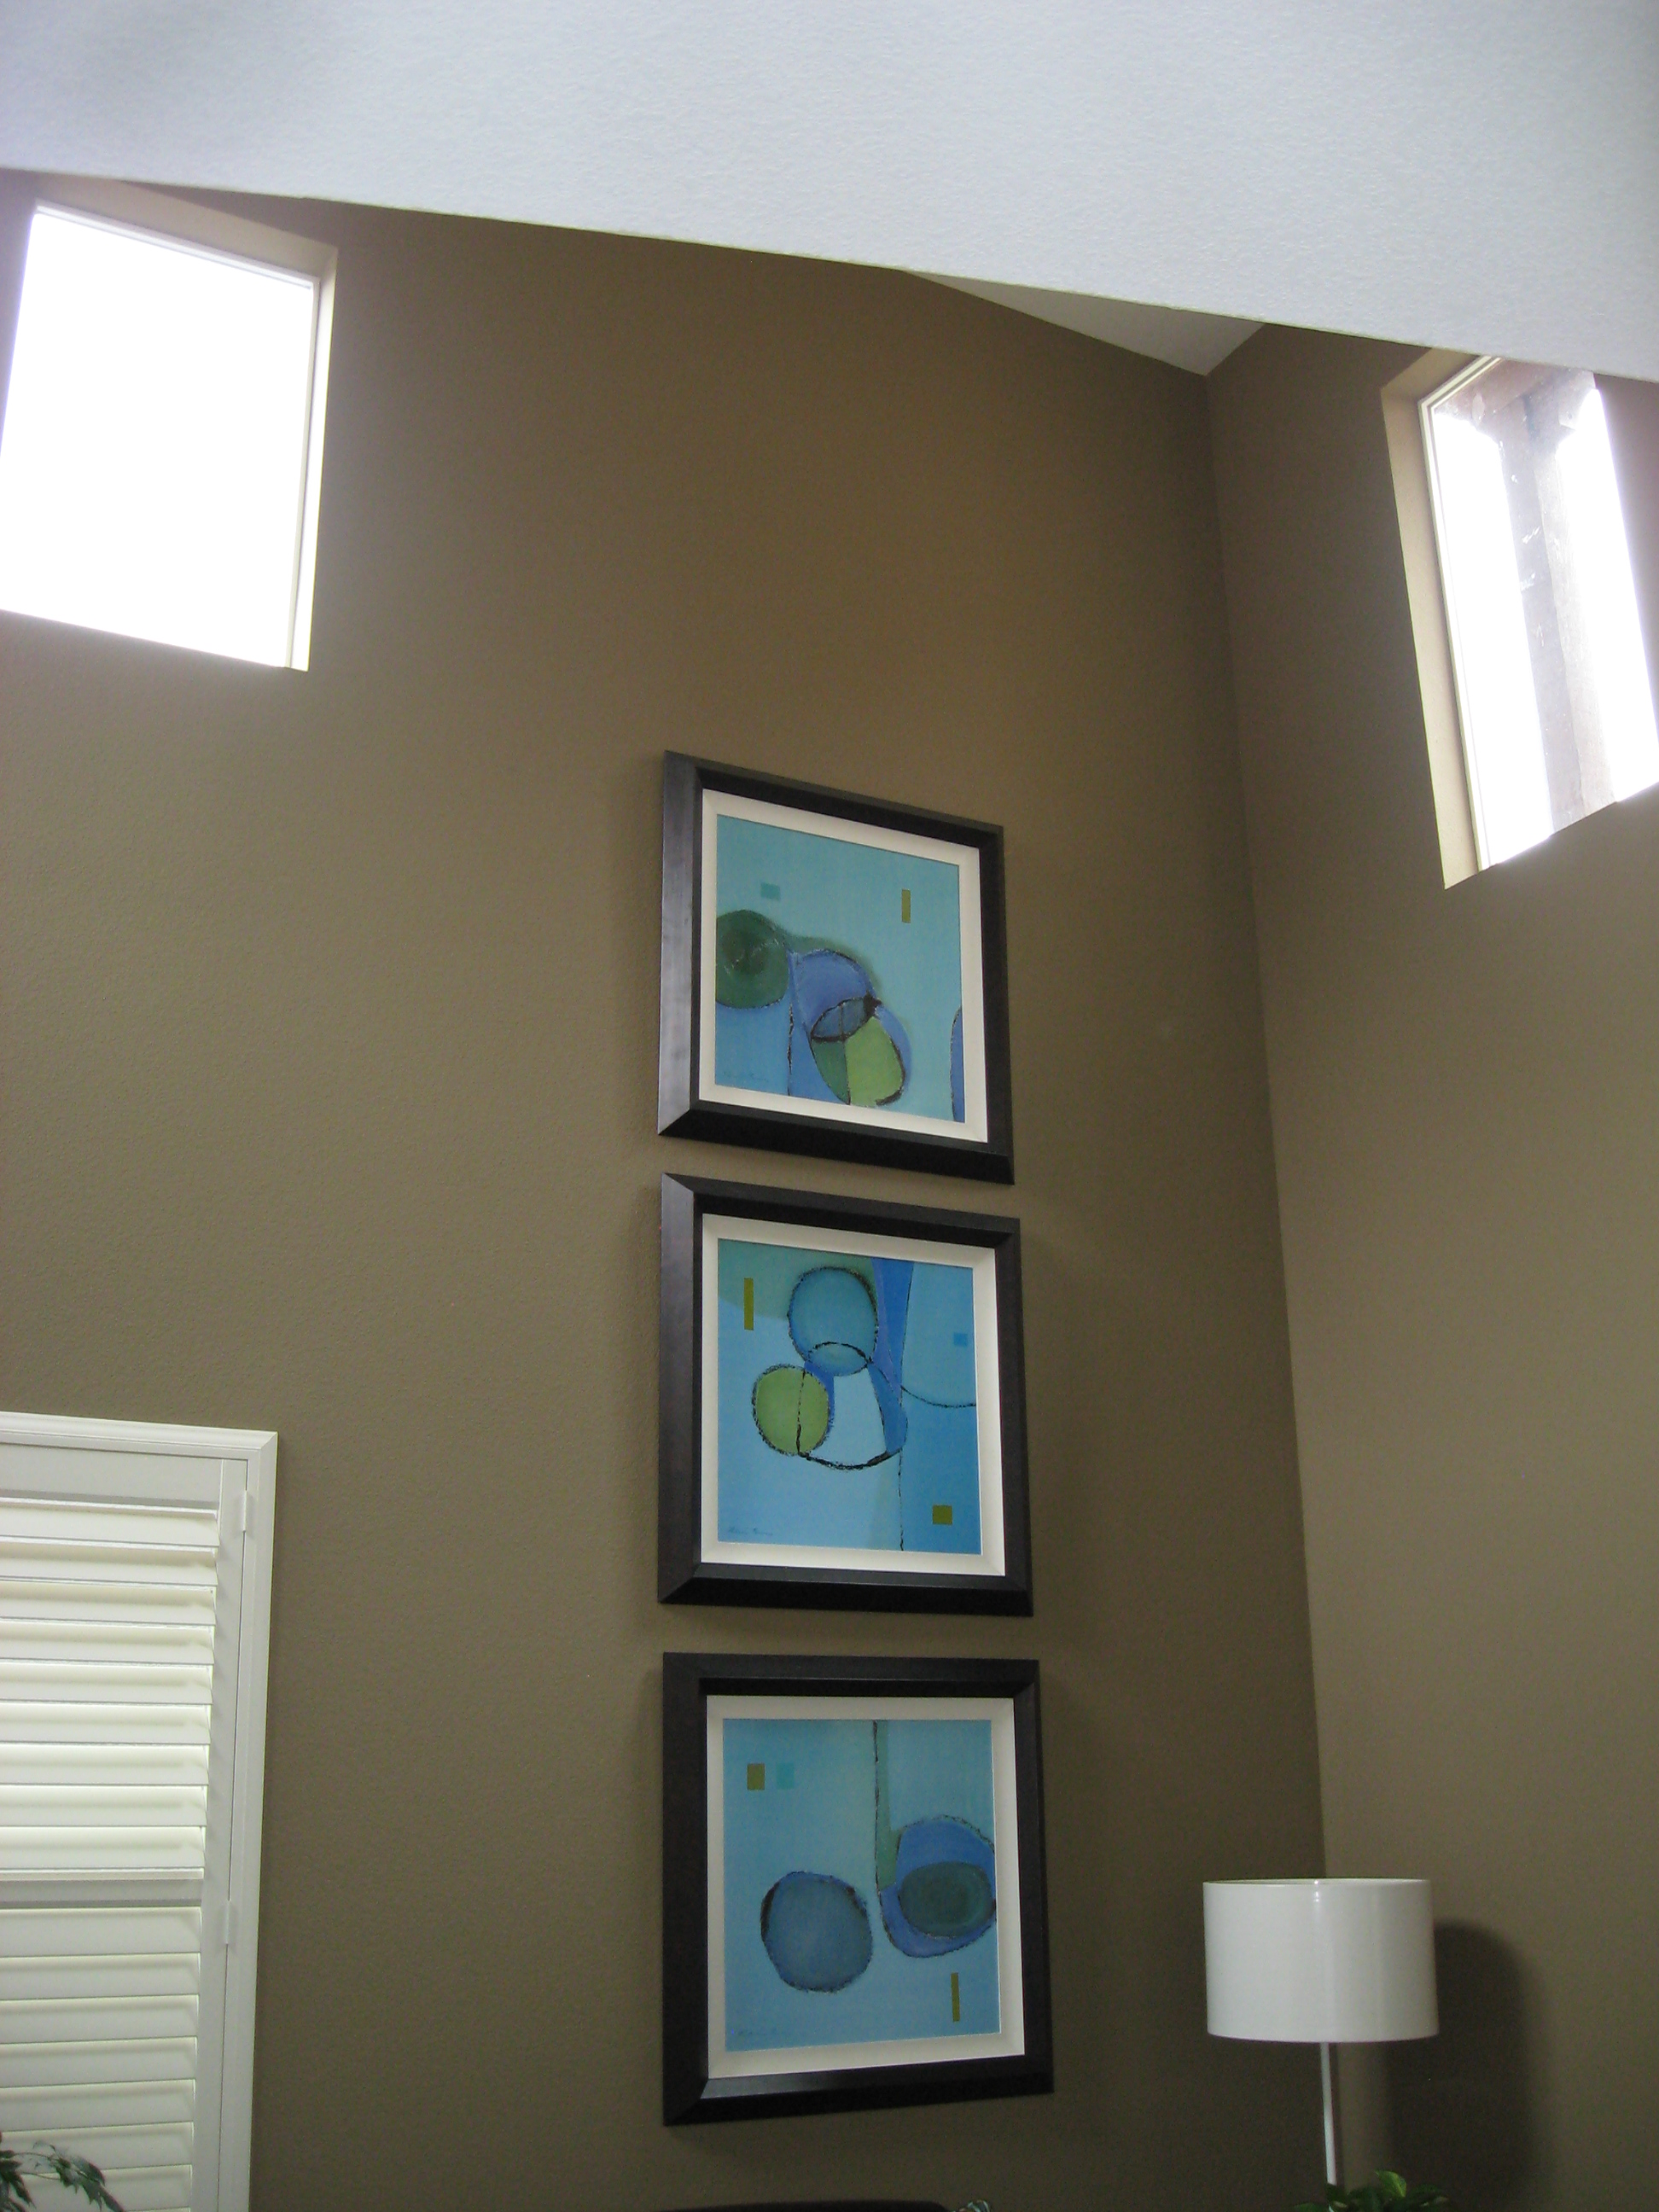 Greenwood village co painters paint contracting services eco paint - Interior exterior painting services set ...